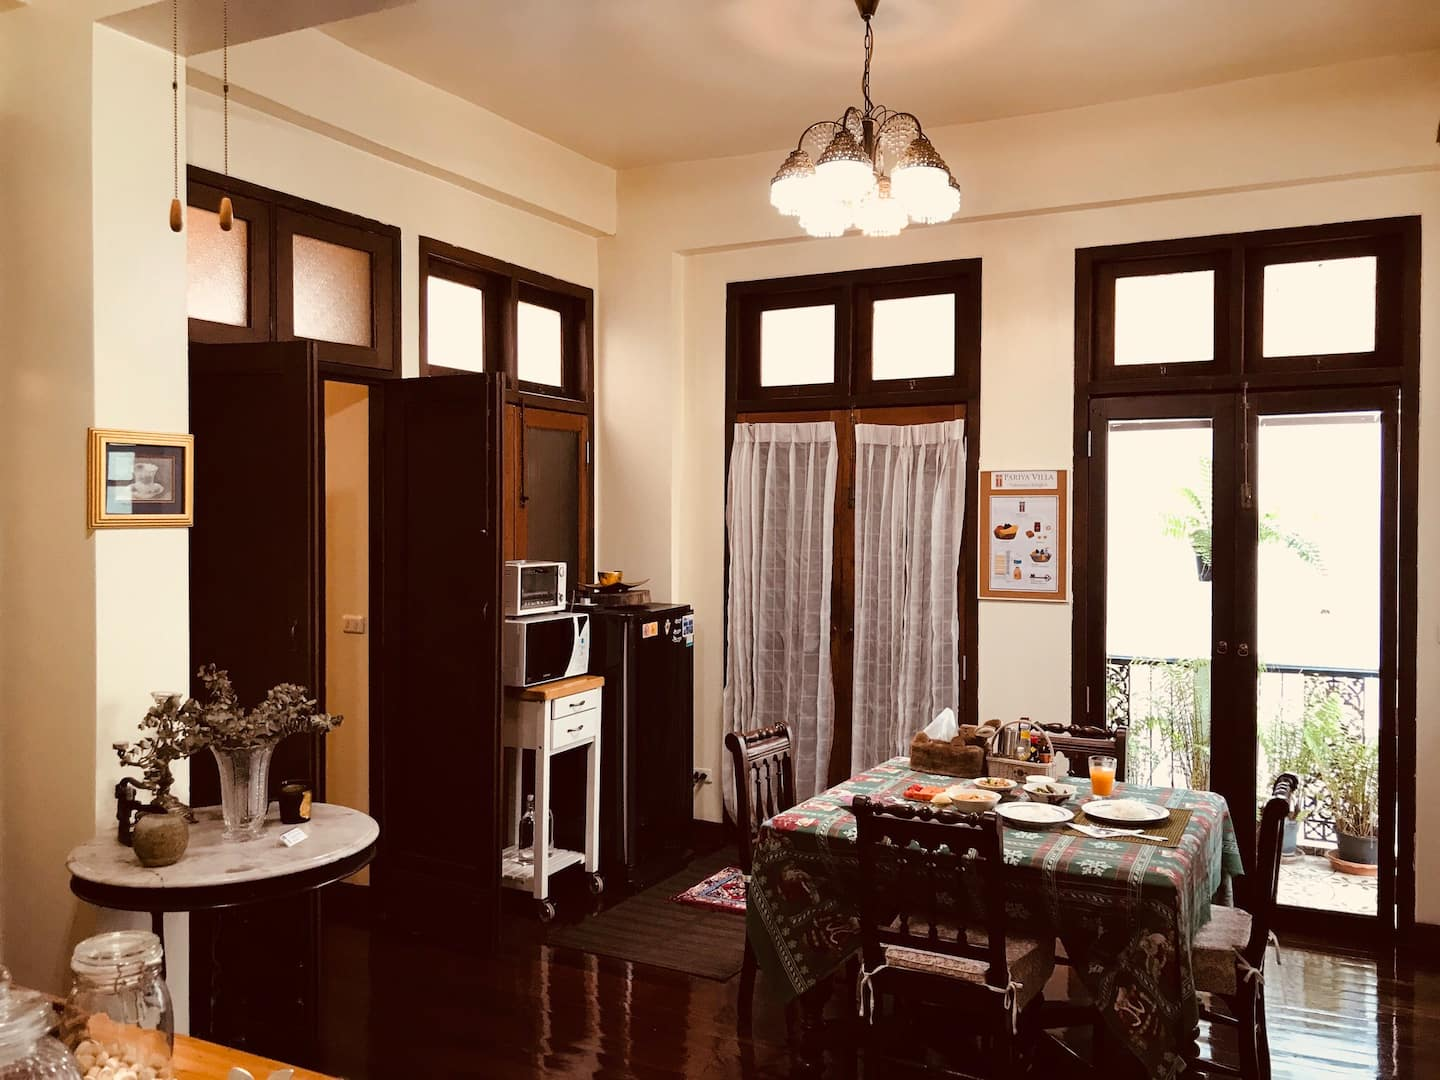 best airbnb in bangkok 2021